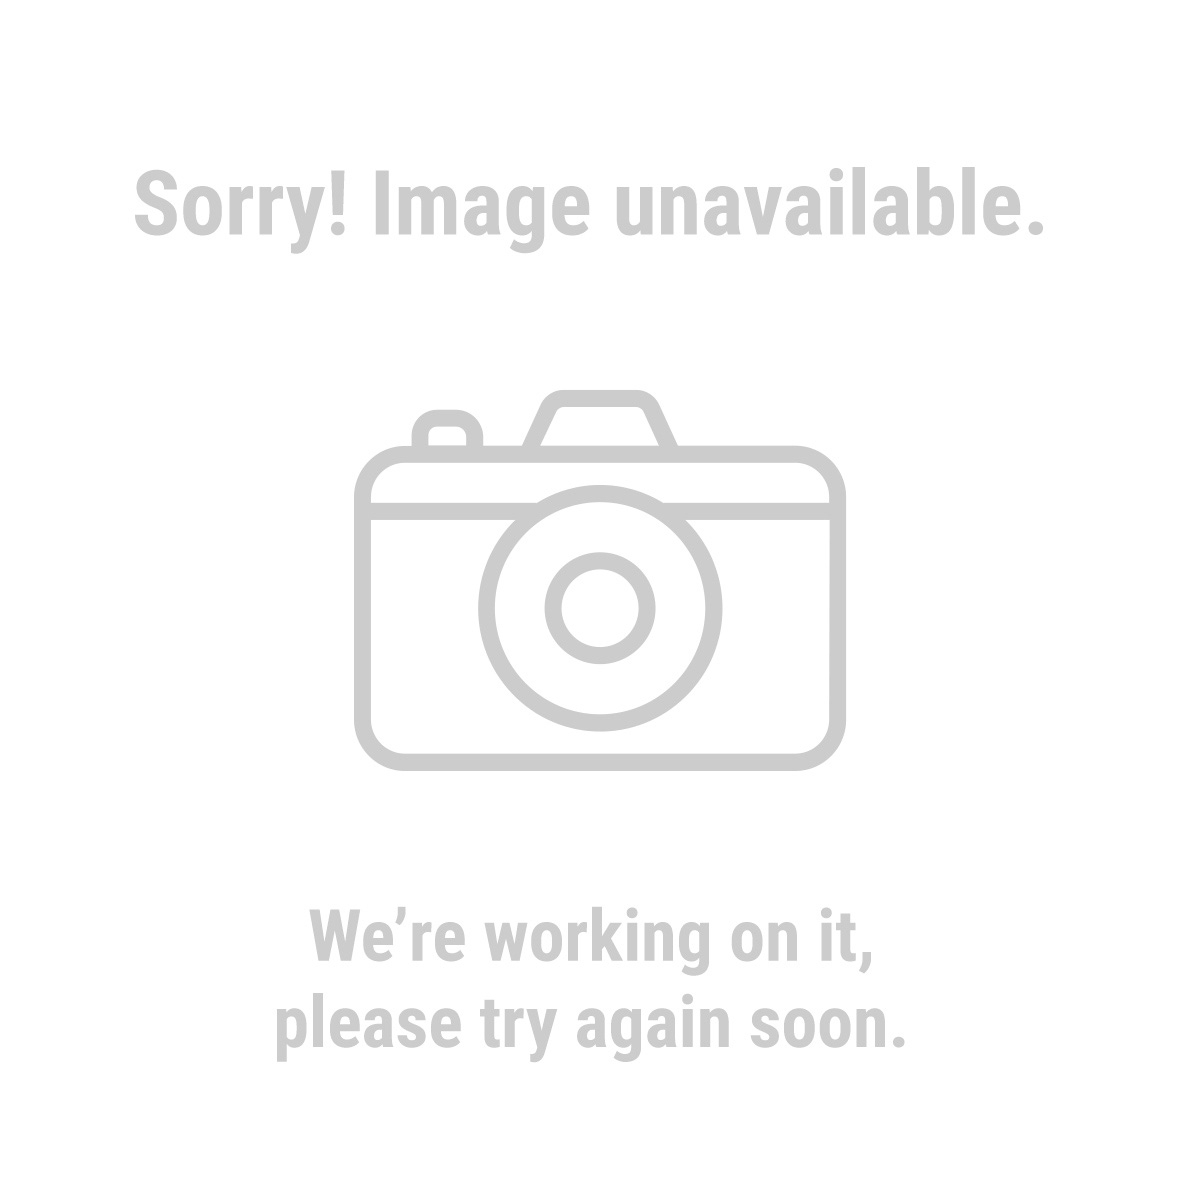 StikTek™ 63246 60 yd. x 0.94 in. General Purpose Masking Tape